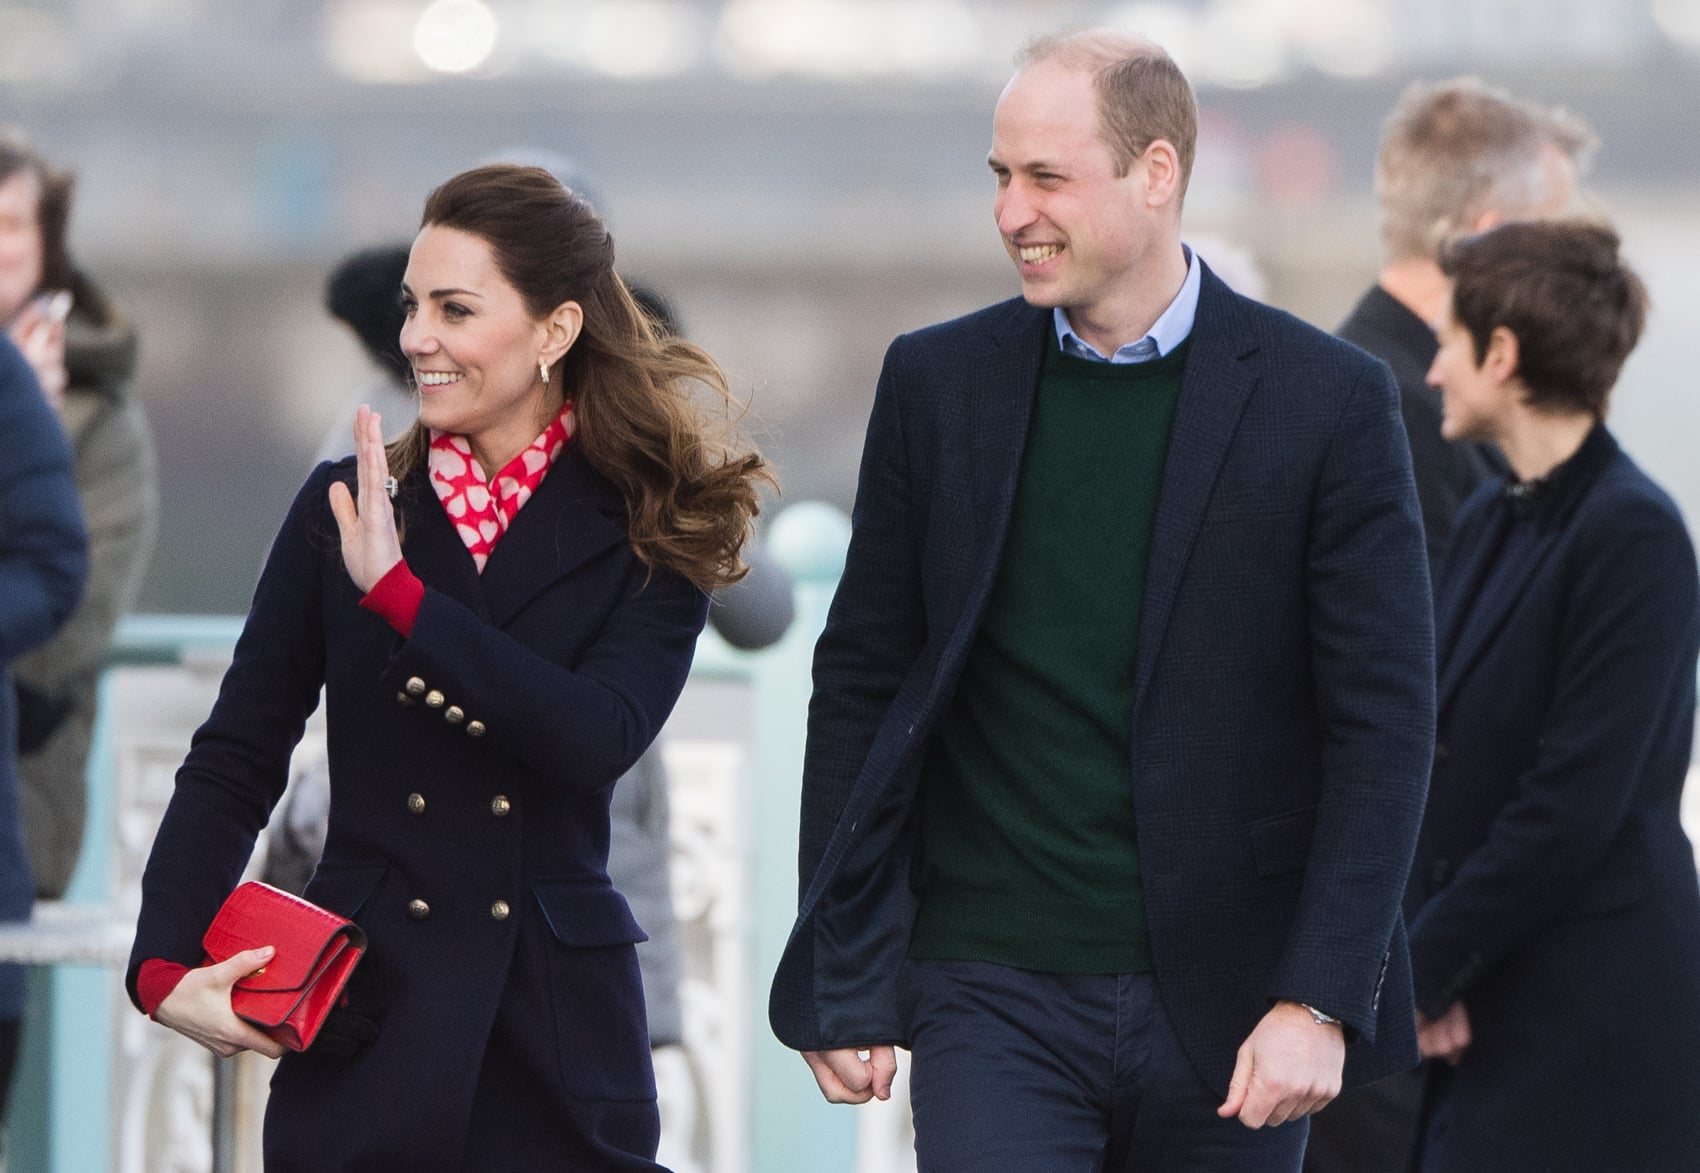 SWANSEA,  - FEBRUARY 04: Prince William, Duke of Cambridge and Catherine, Duchess of Cambridge visit Mumbles Pier on February 04, 2020 in Swansea, Wales . (Photo by Samir Hussein/WireImage)